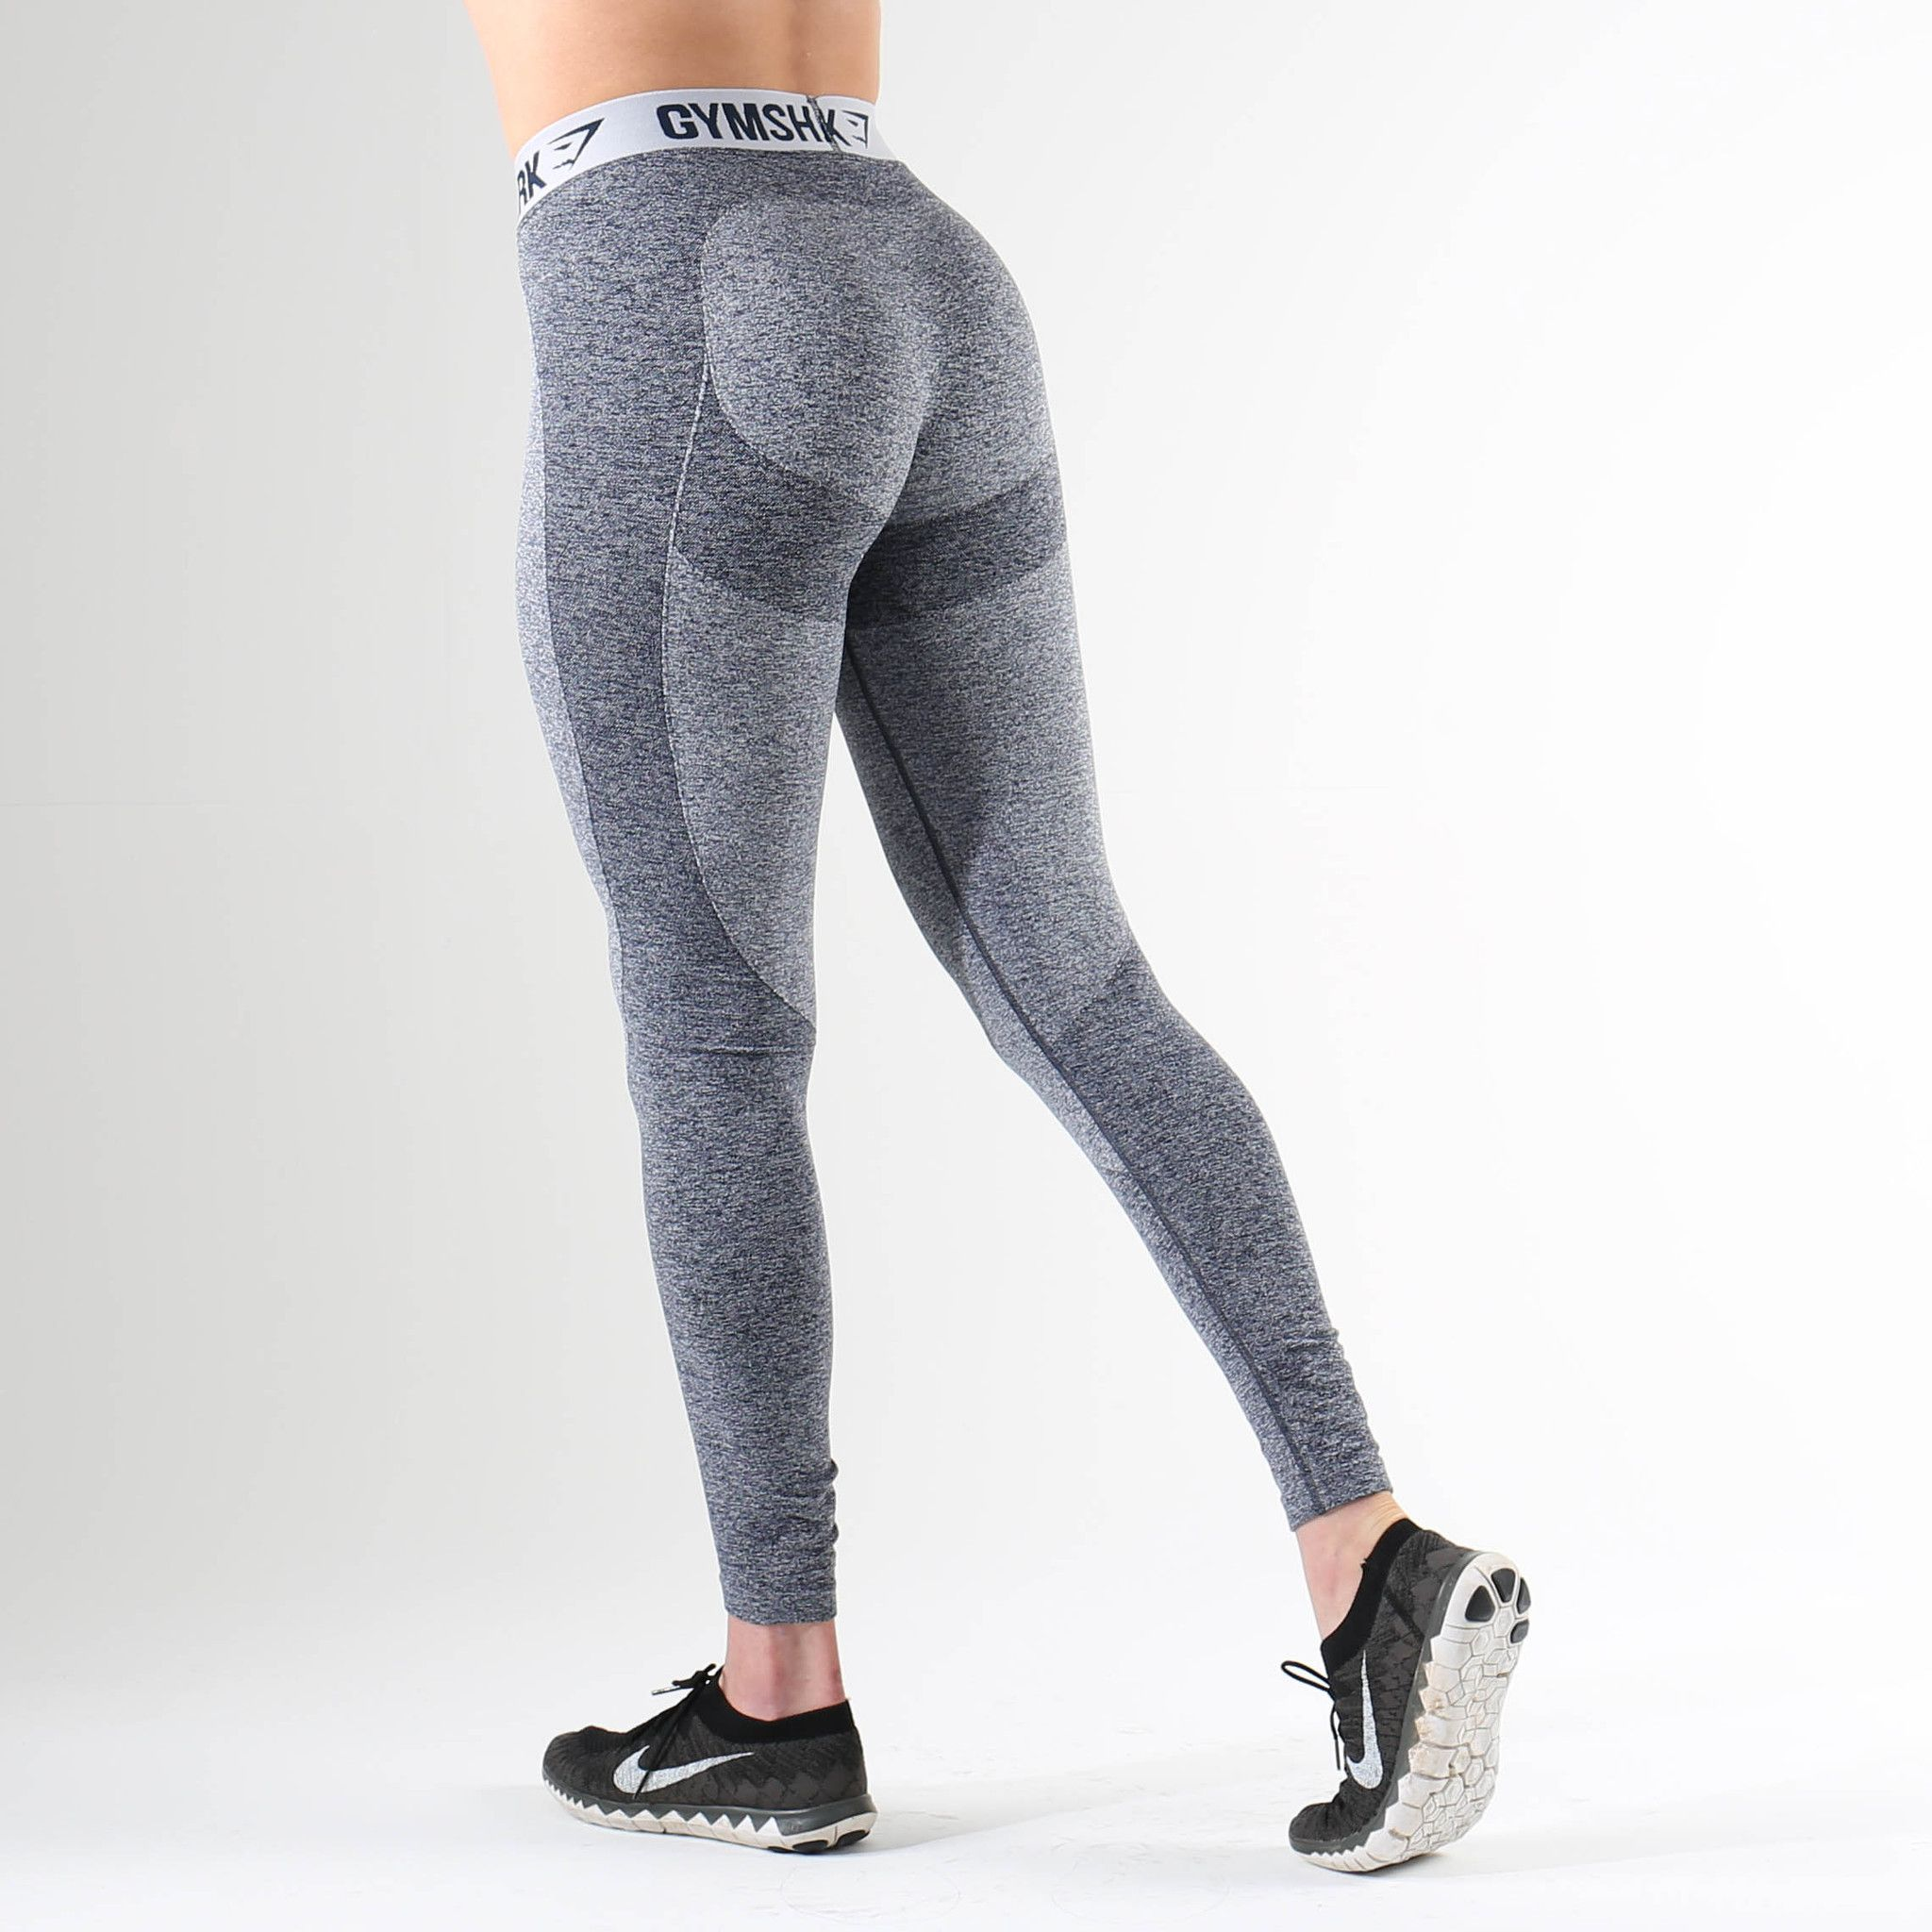 bce579f15b27a Gymshark Flex Leggings - Sapphire Blue Marl/Light Grey | workout ...